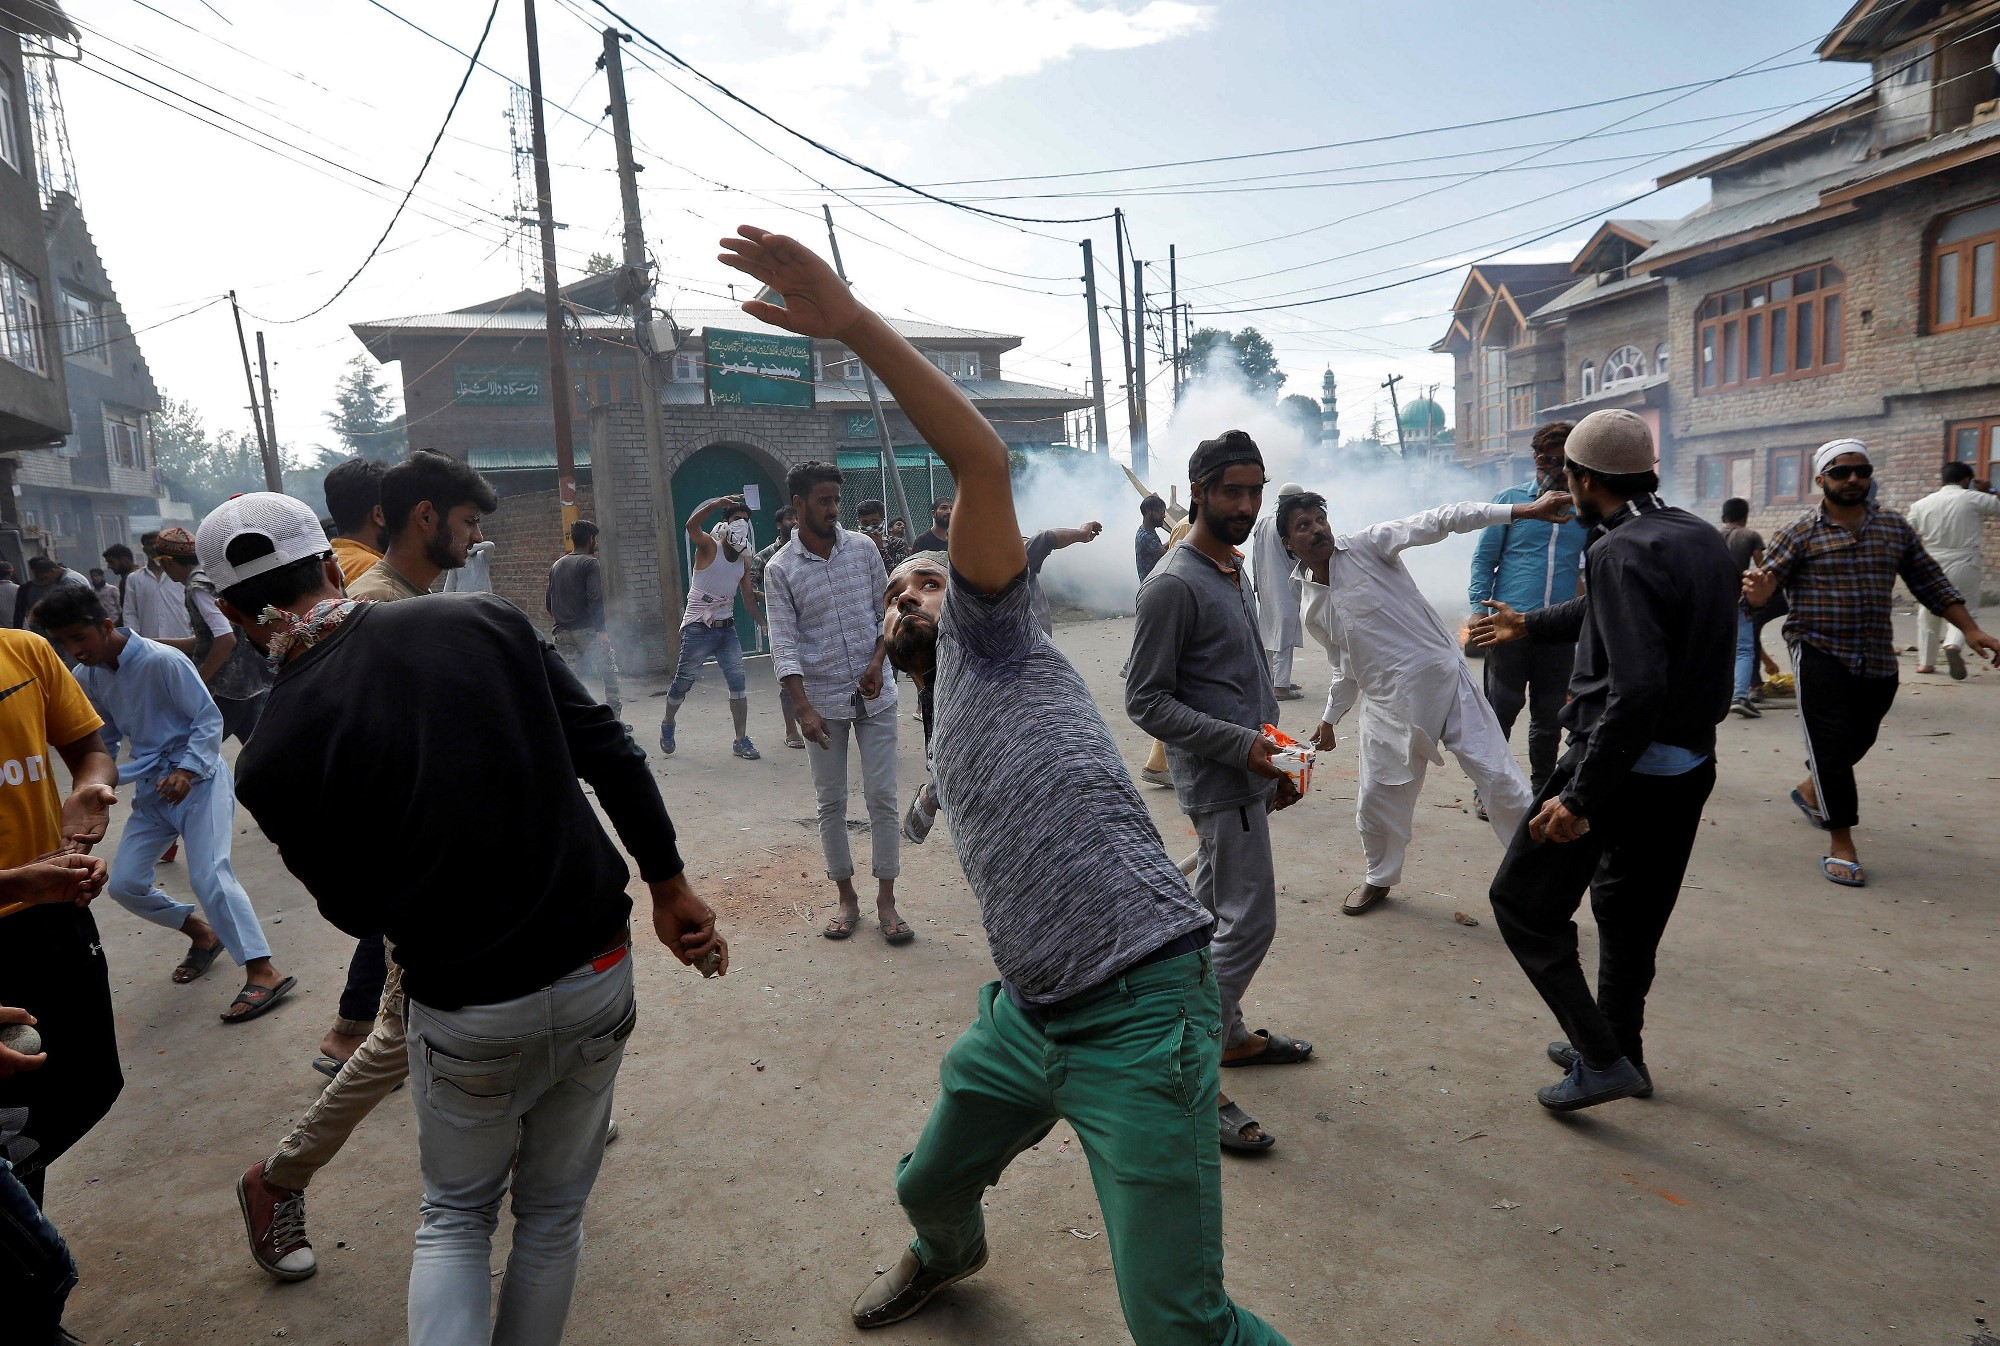 Kashmiri men throw stones towards Indian security forces during clashes following scrapping of the special constitutional status for Kashmir by the Indian government, in Srinagar, August 23, 2019. REUTERS/Adnan Abidi